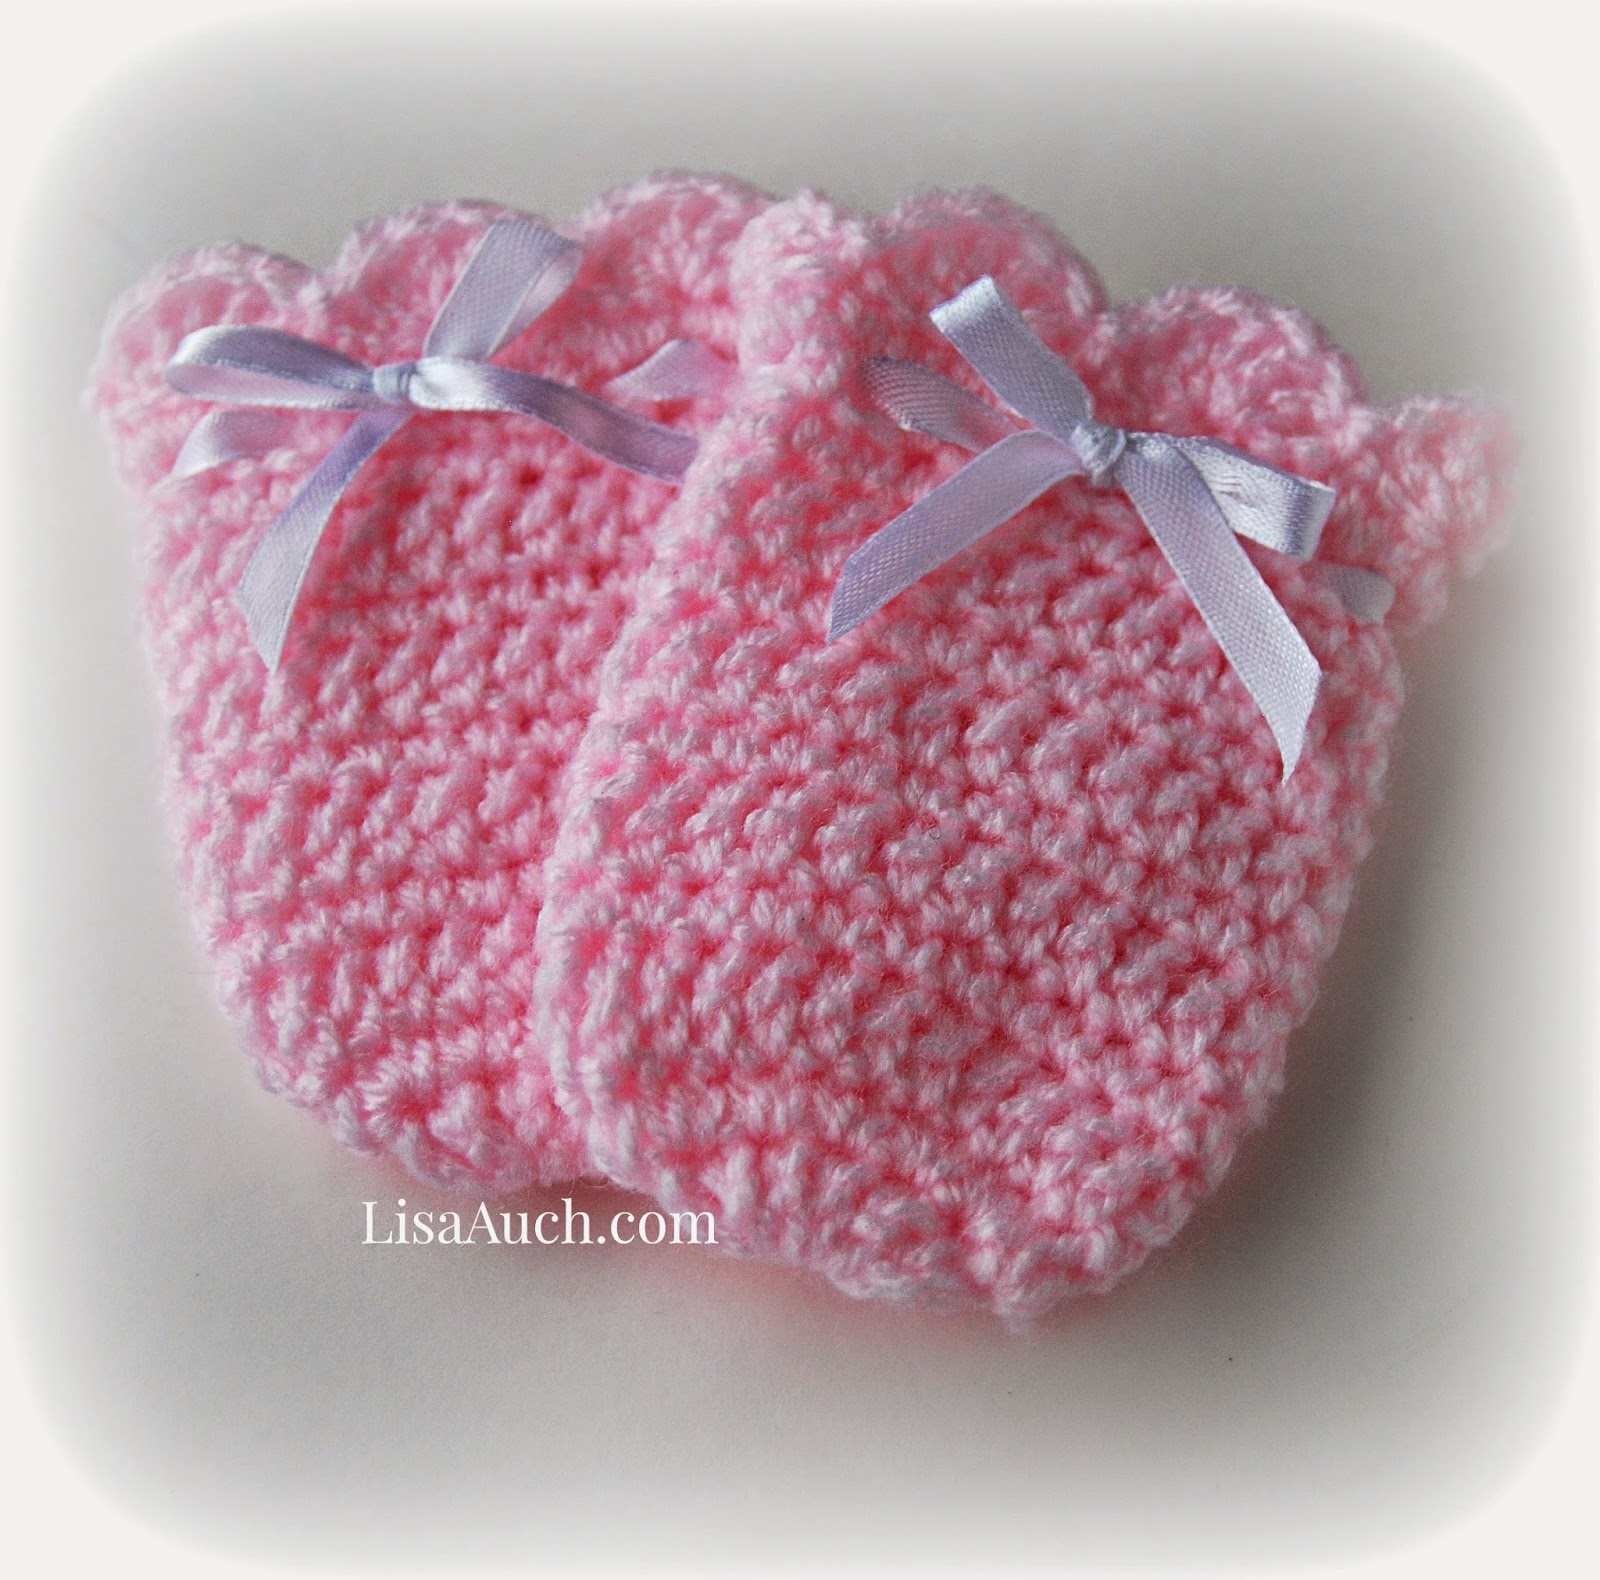 Free Crochet Baby Mittens Pattern : Crochet Patterns Free Easy Mittens images